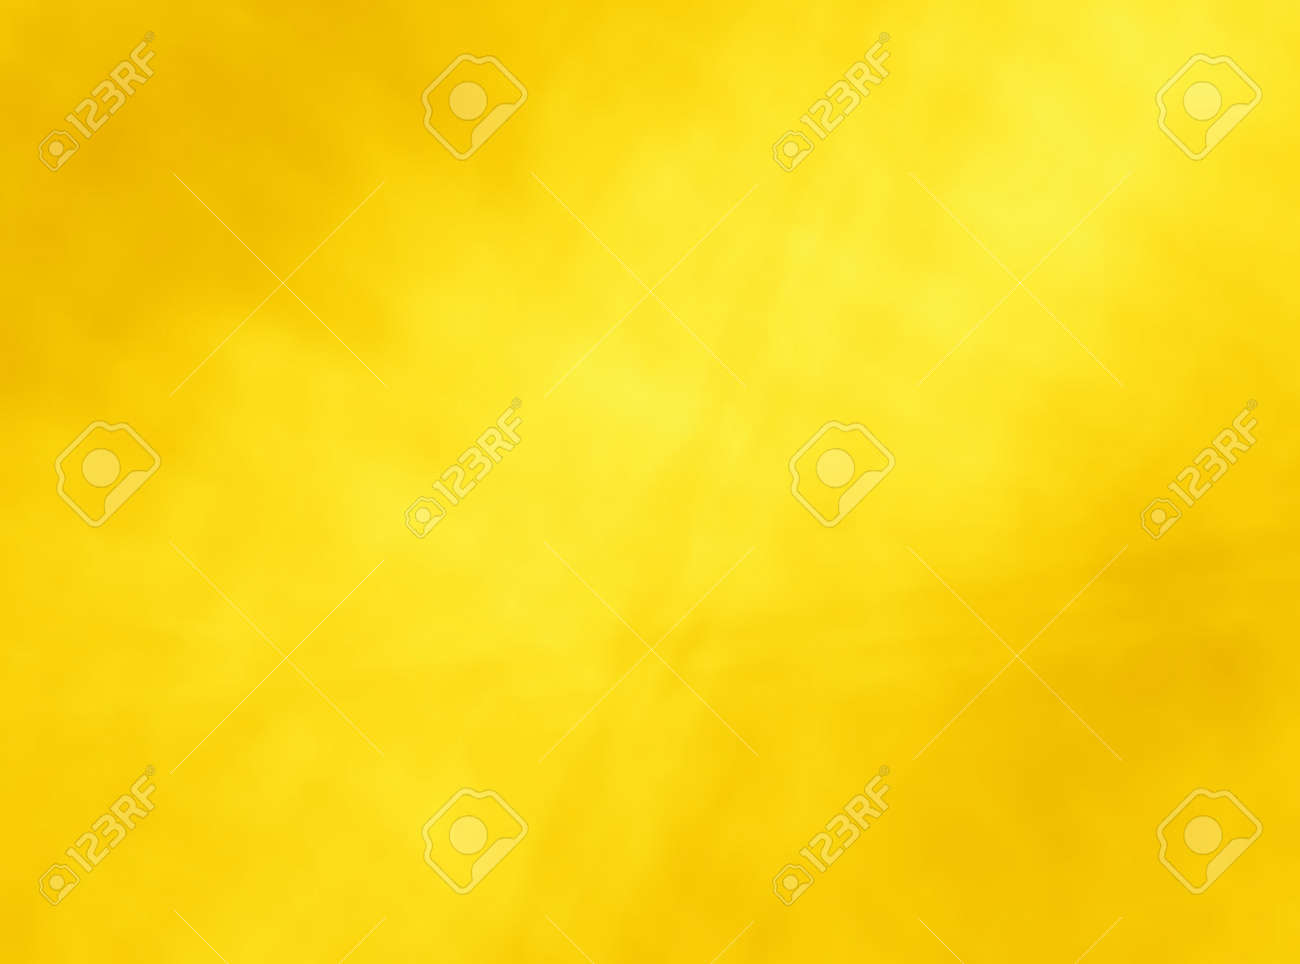 Yellow background texture soft web backdrop - 135064378